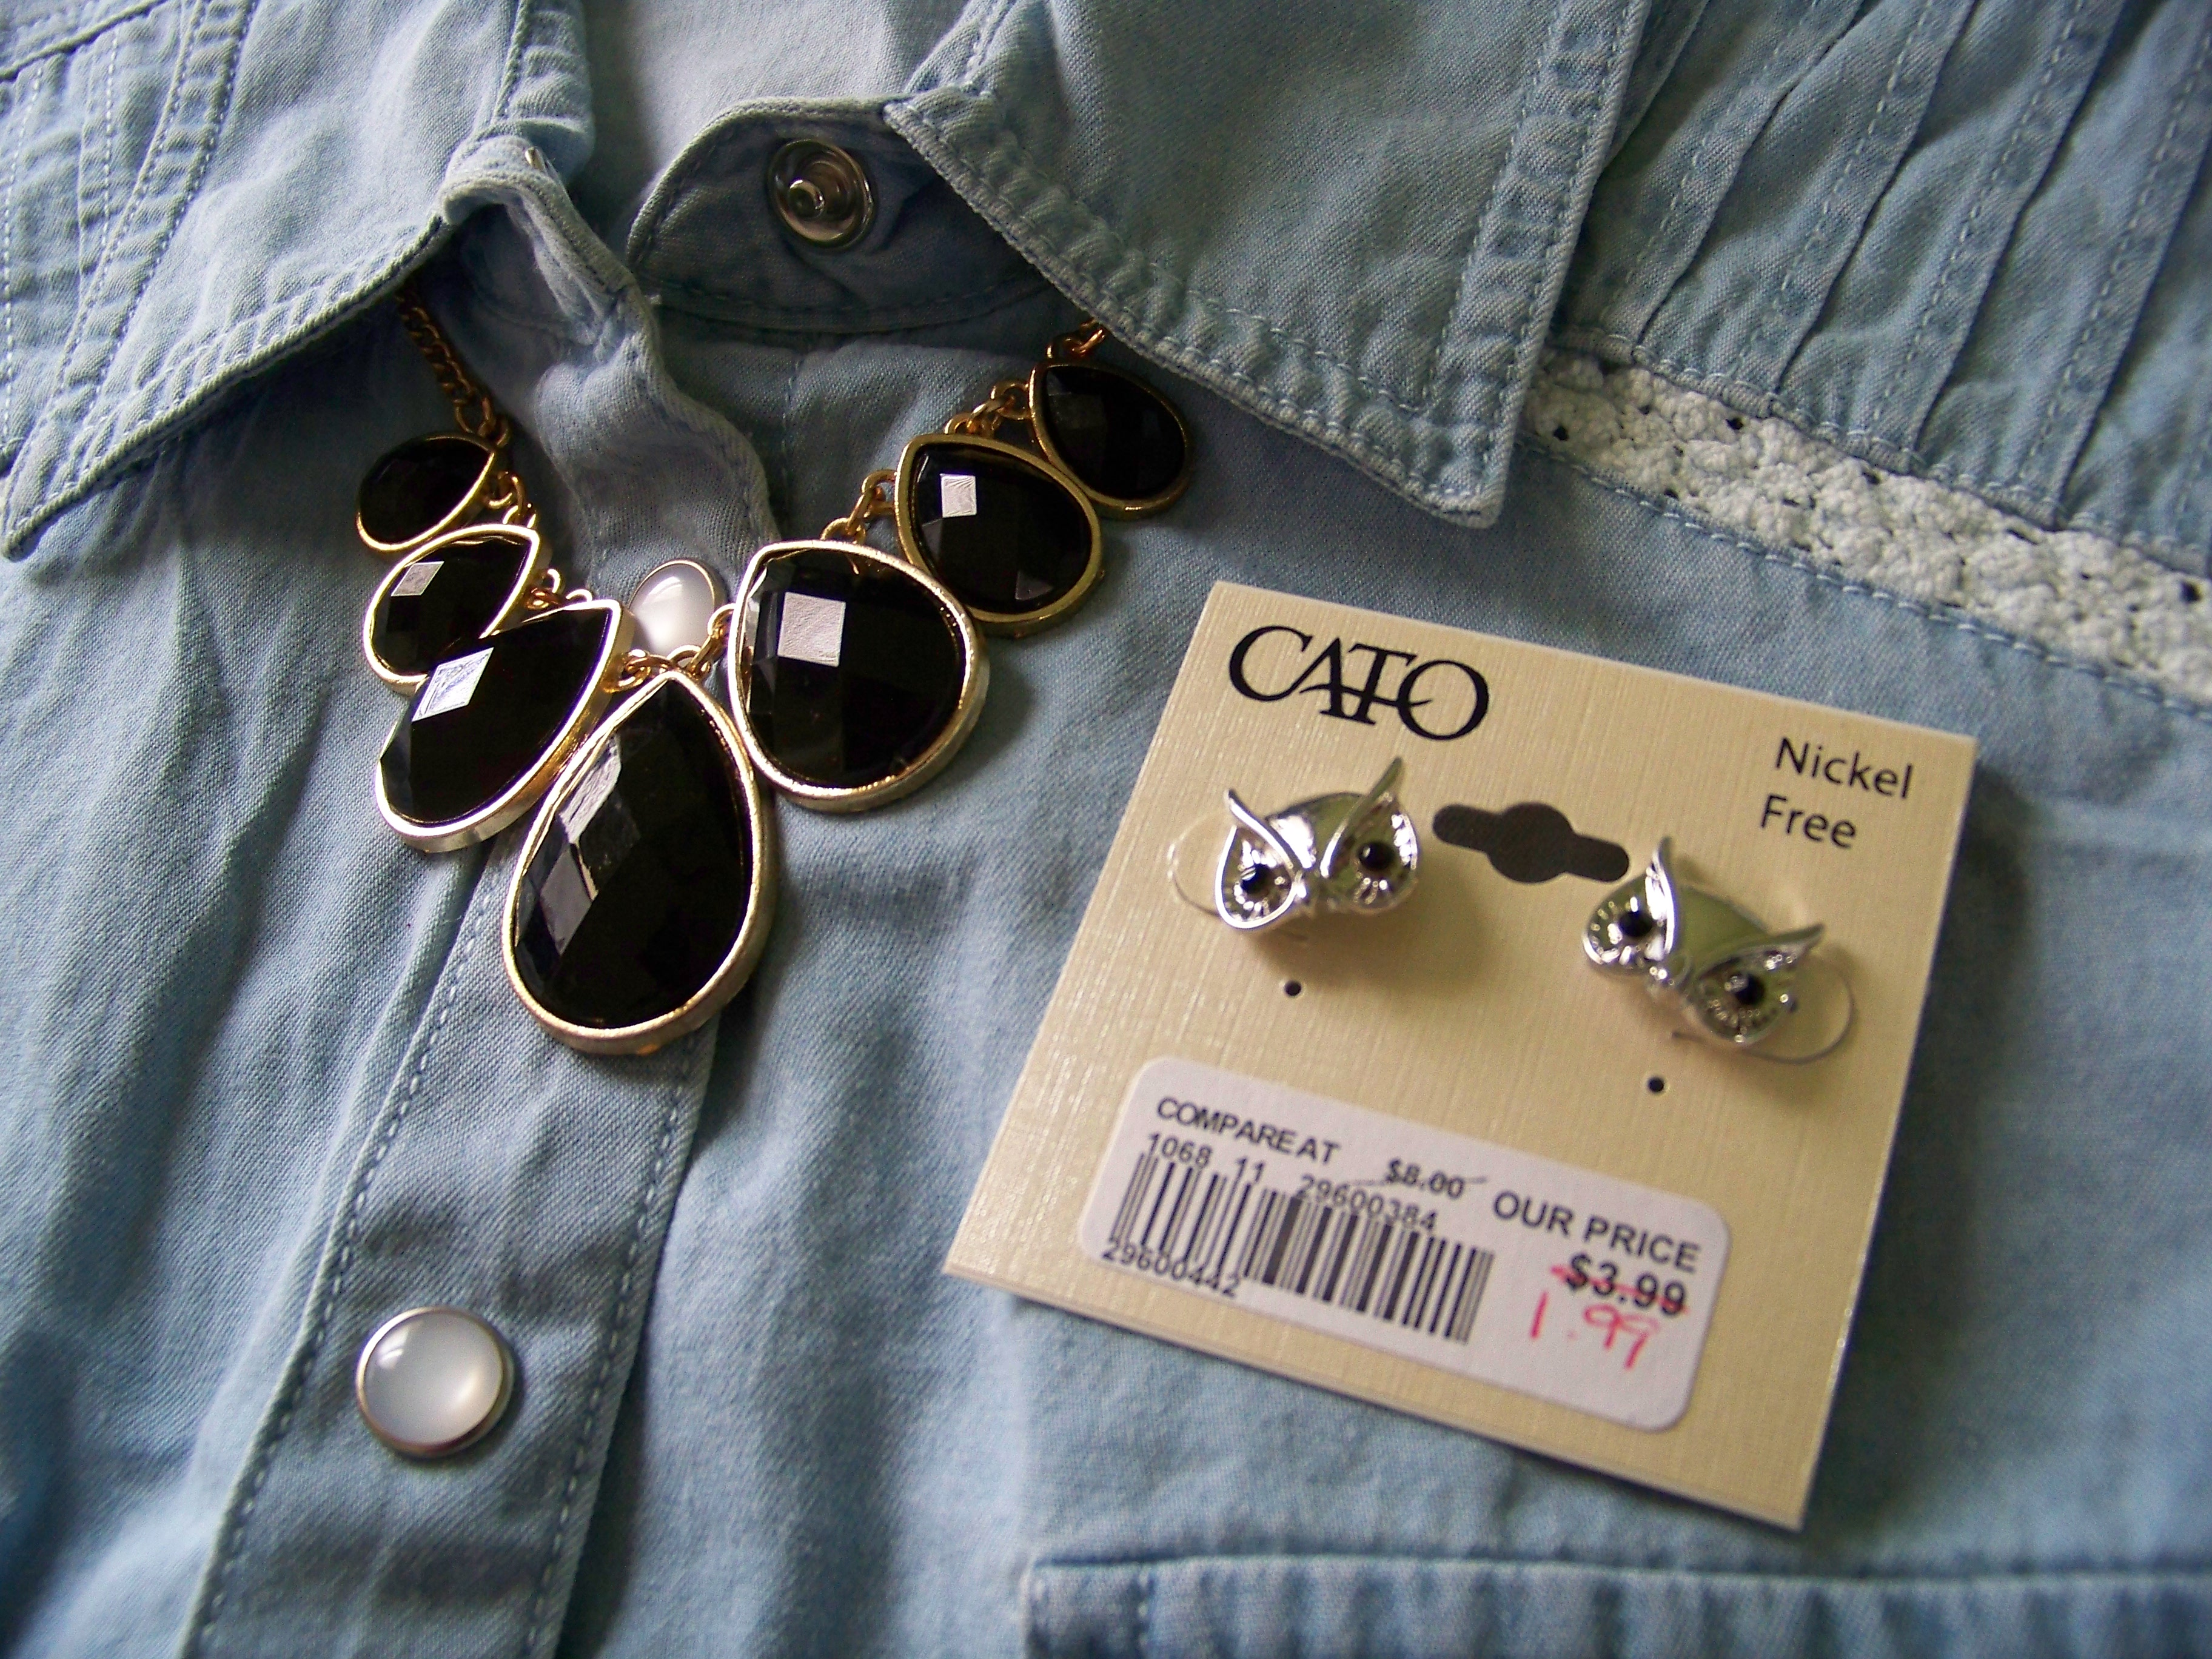 Cato Fashions Clearance Sale Sale Price